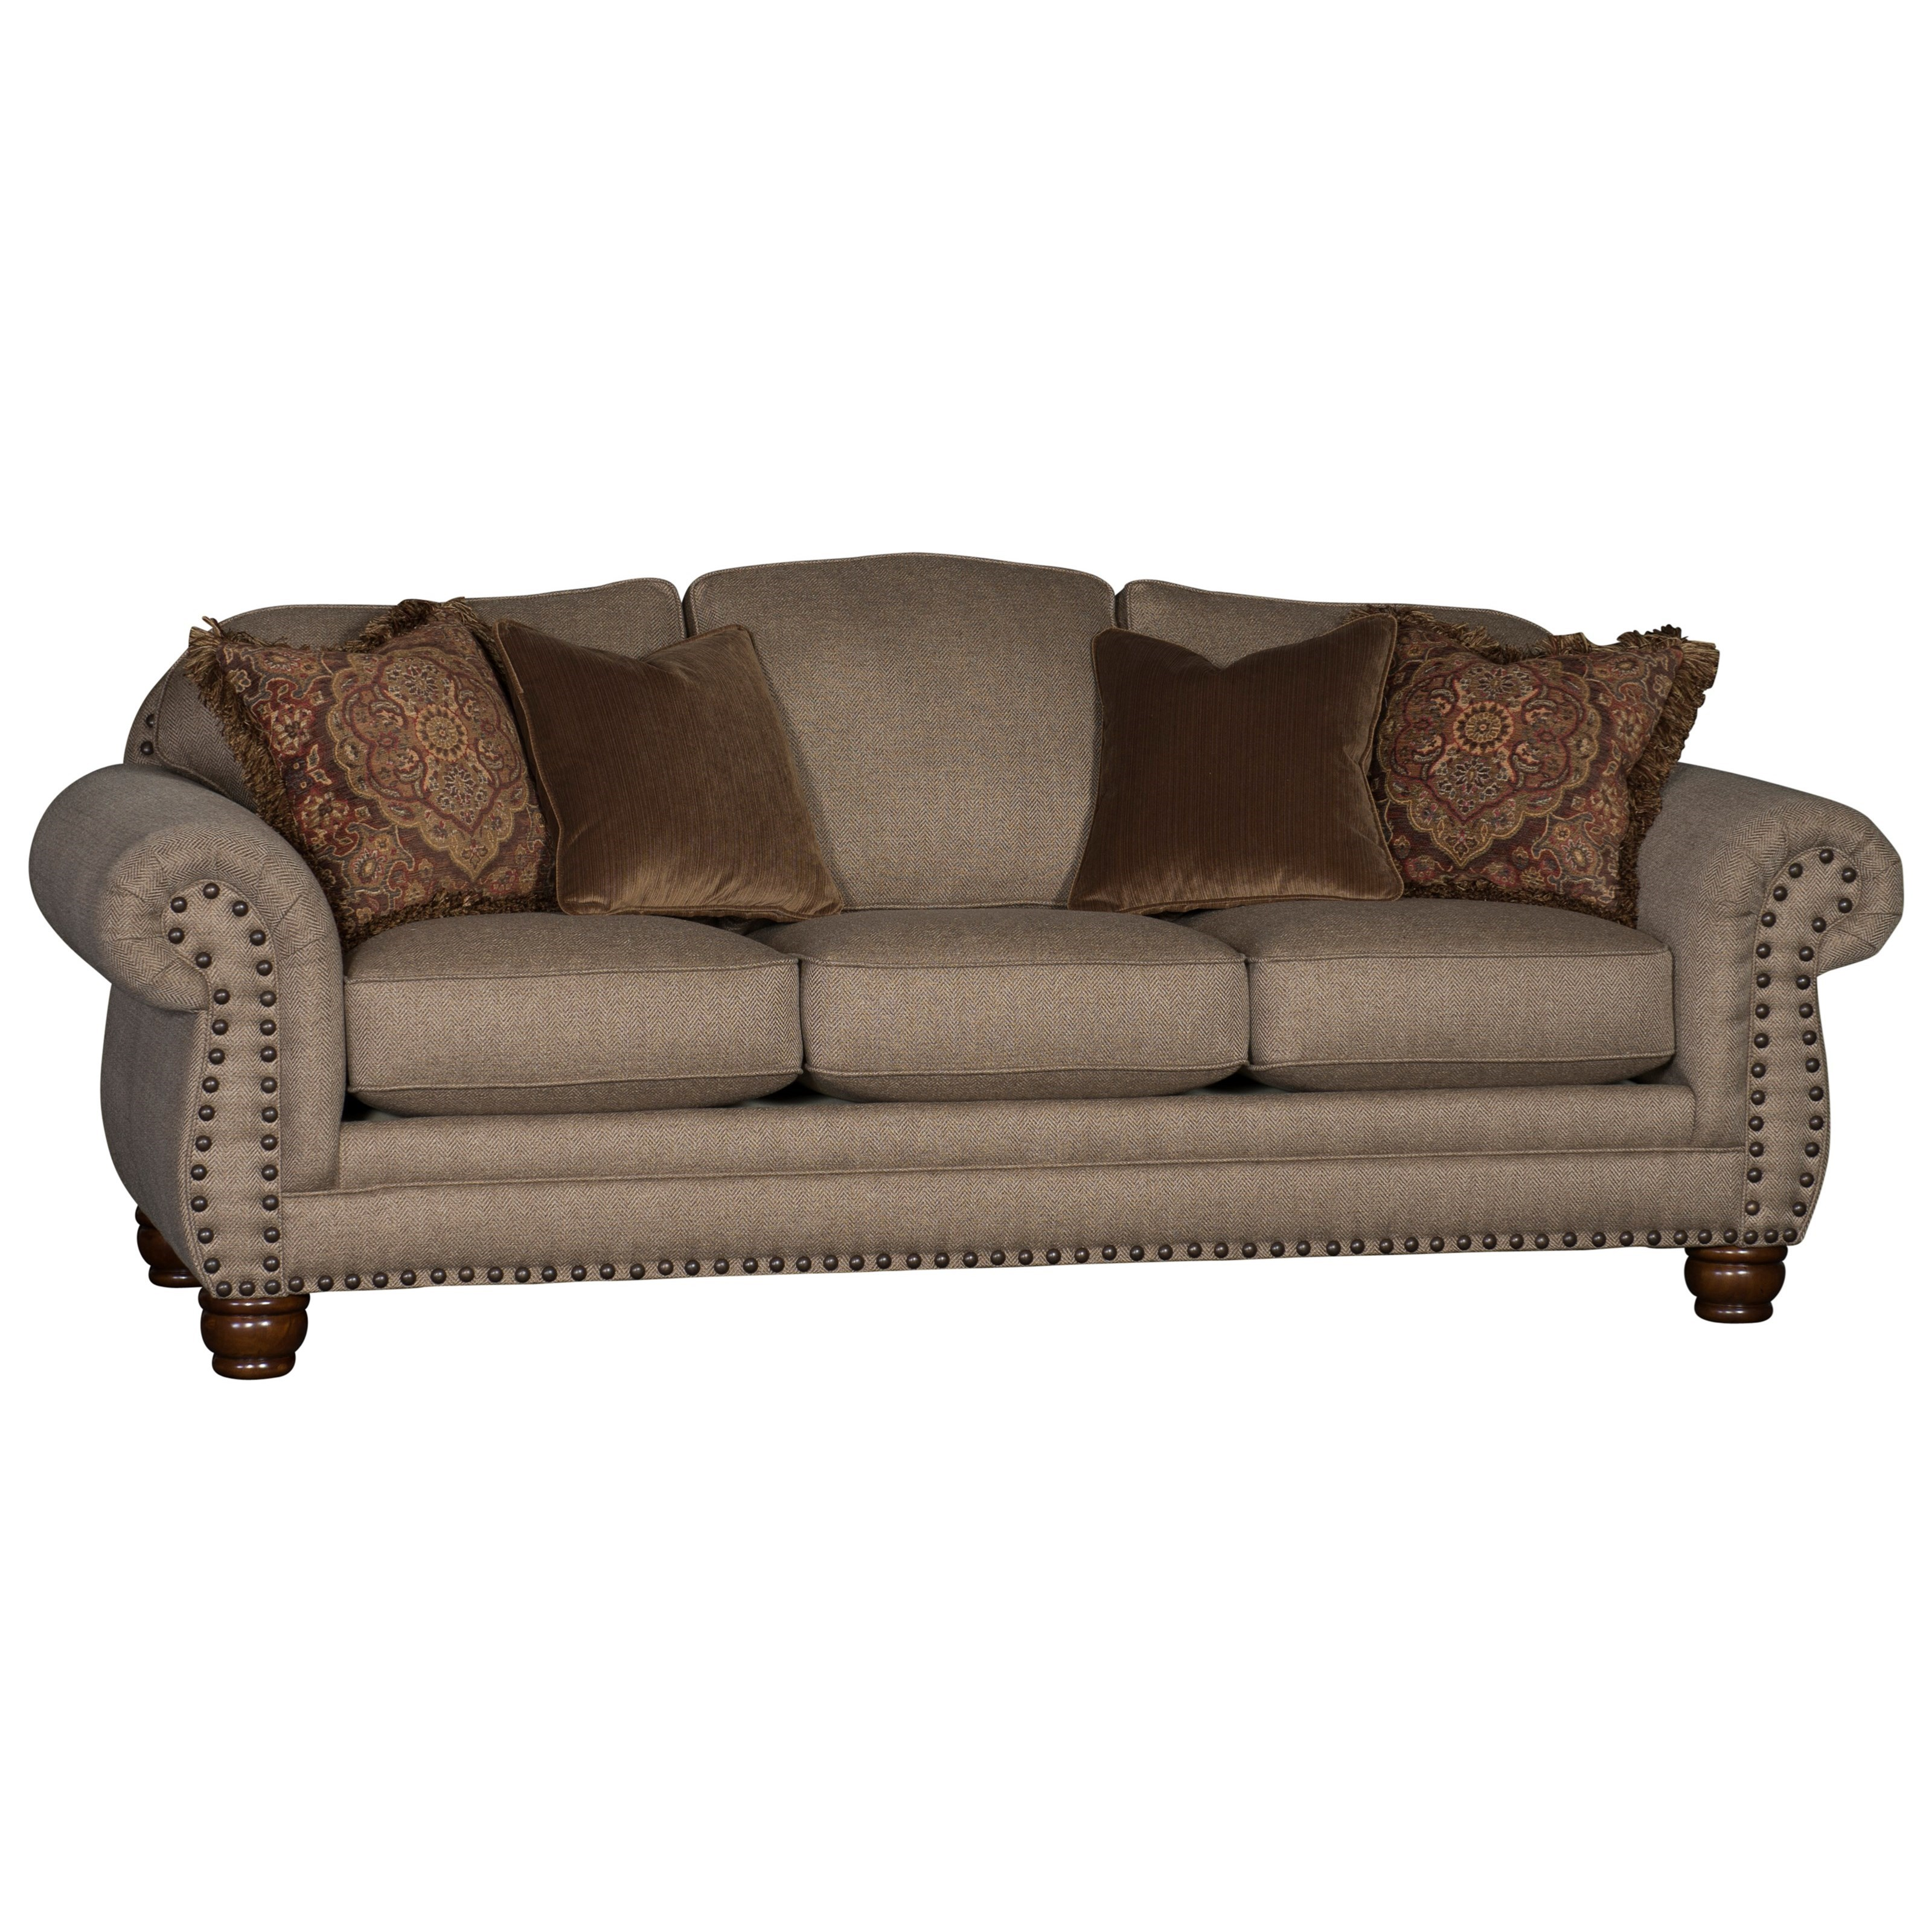 Mayo 3180 Traditional Sofa - Item Number: 3180F10-TIBEPE